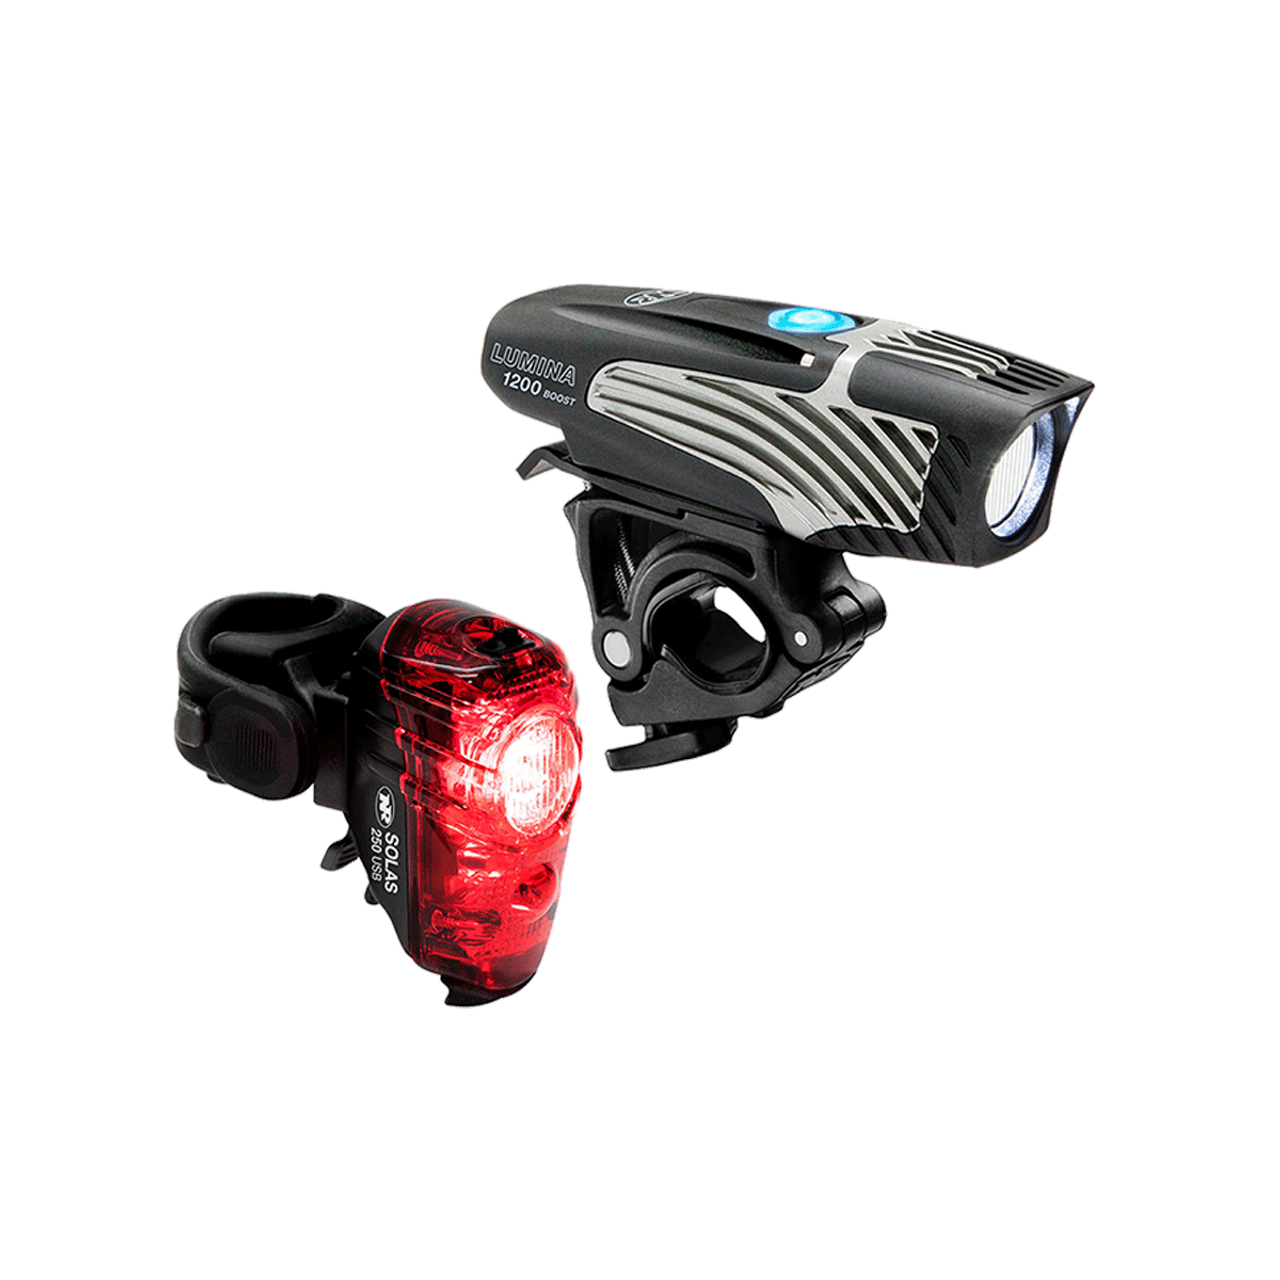 NiteRider Lumina 1200 Boost / Solas 250 Light Set USB Rechargeable